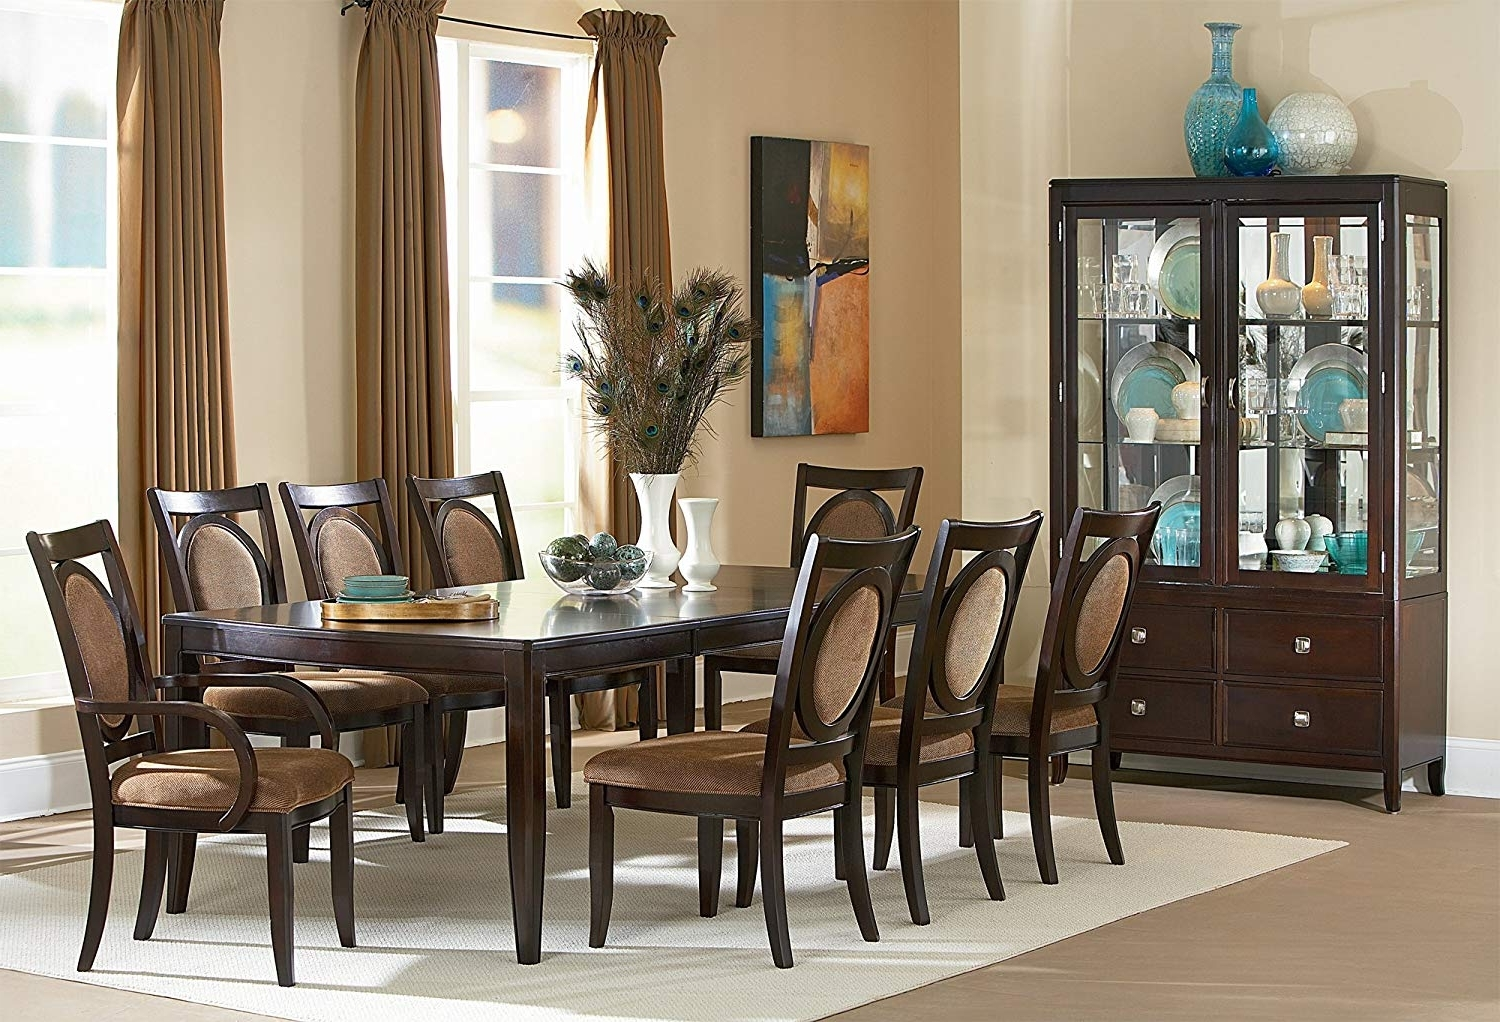 Dining Tables With 8 Chairs within Most Popular Amazon - Steve Silver Company Montblanc Table With Two 18